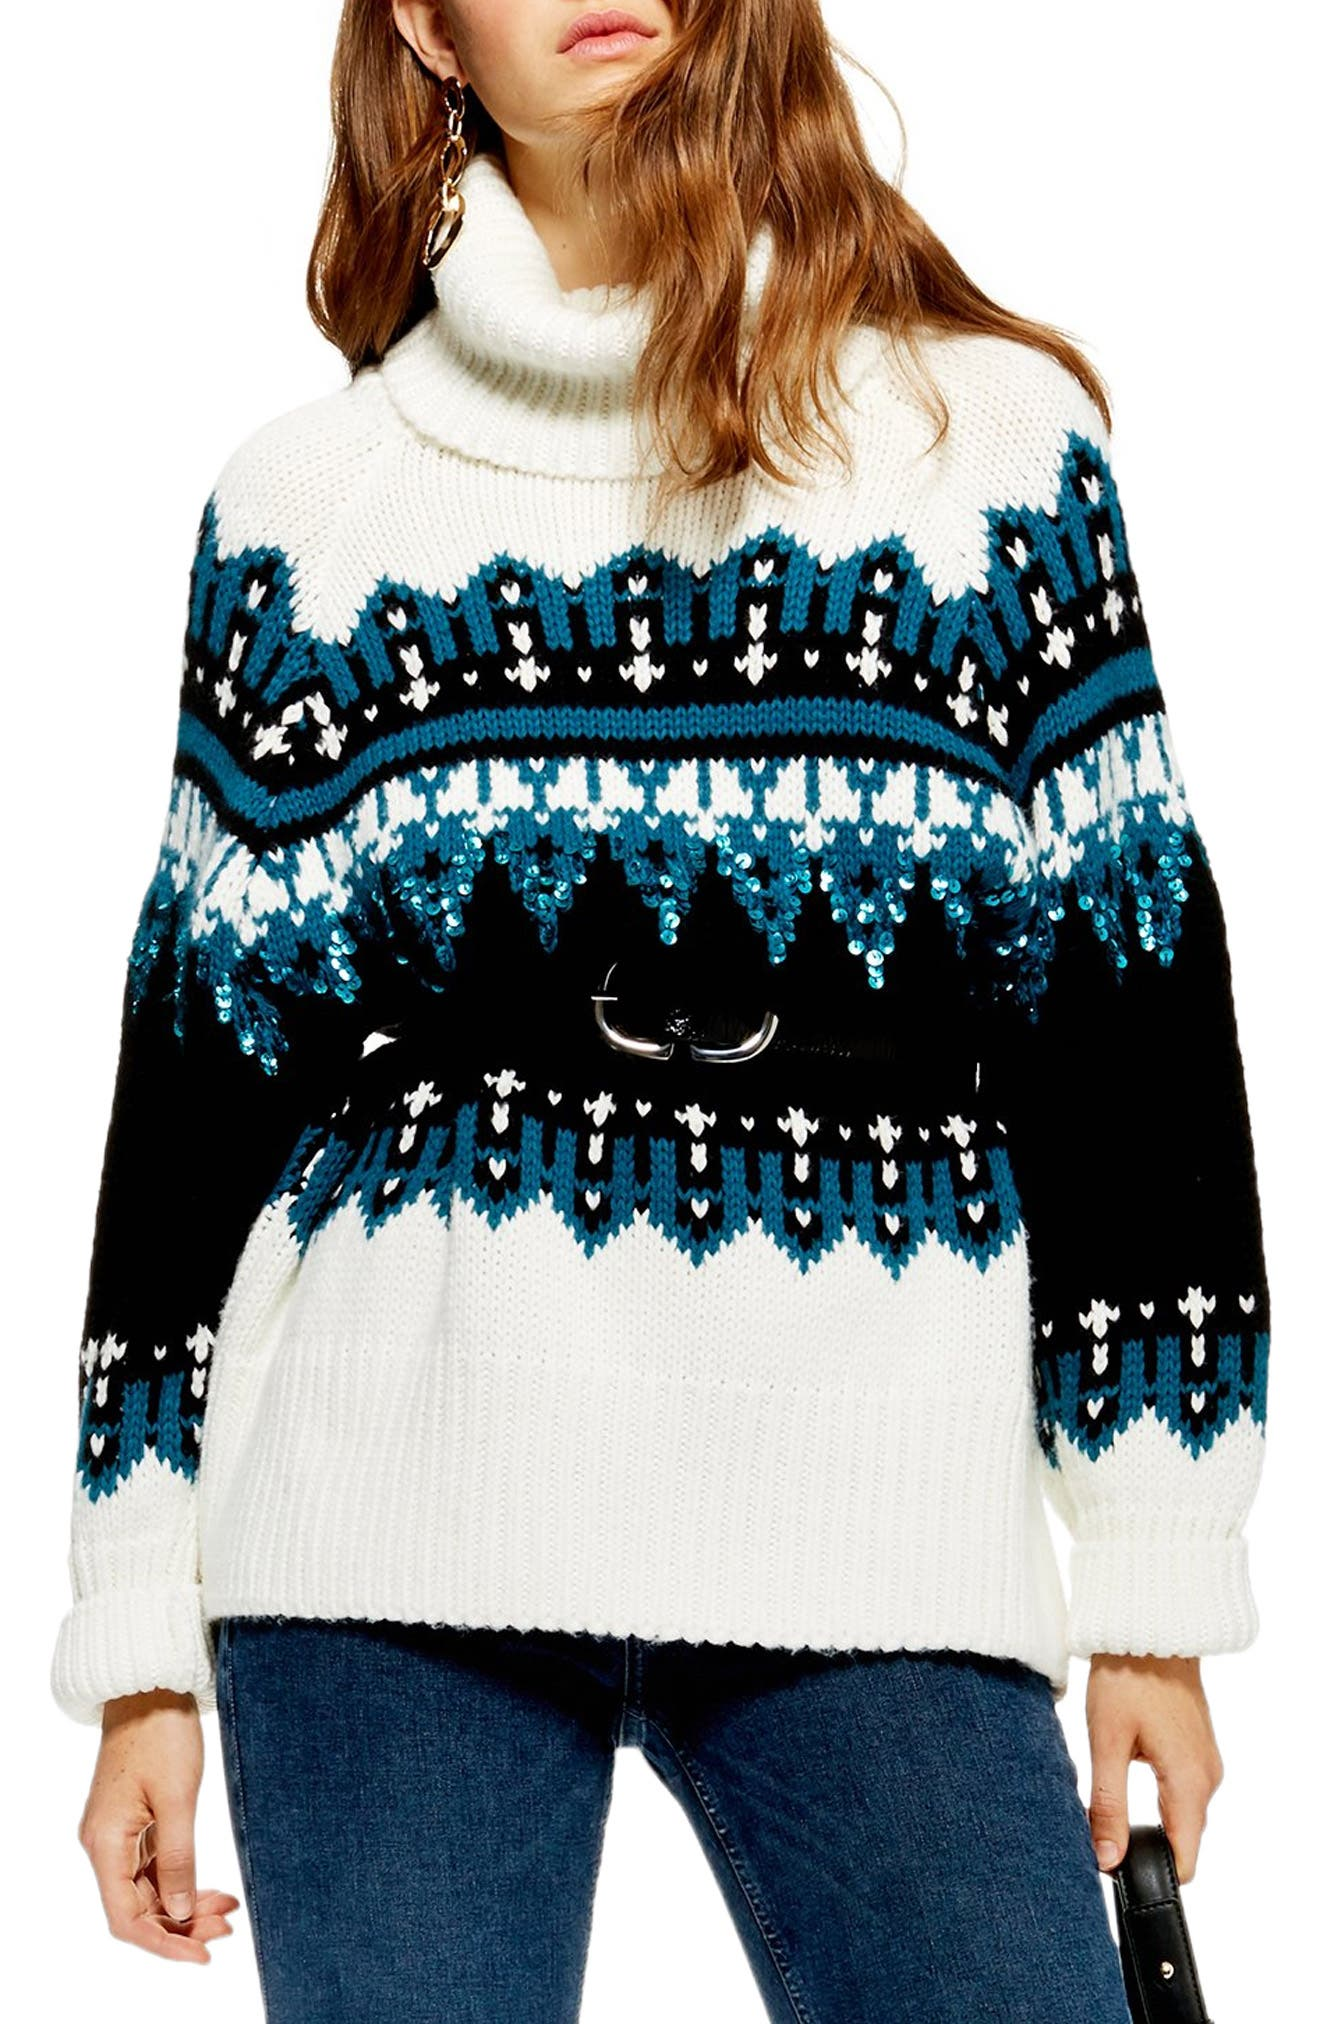 Sequin Oversize Fair Isle Sweater,                             Main thumbnail 1, color,                             900